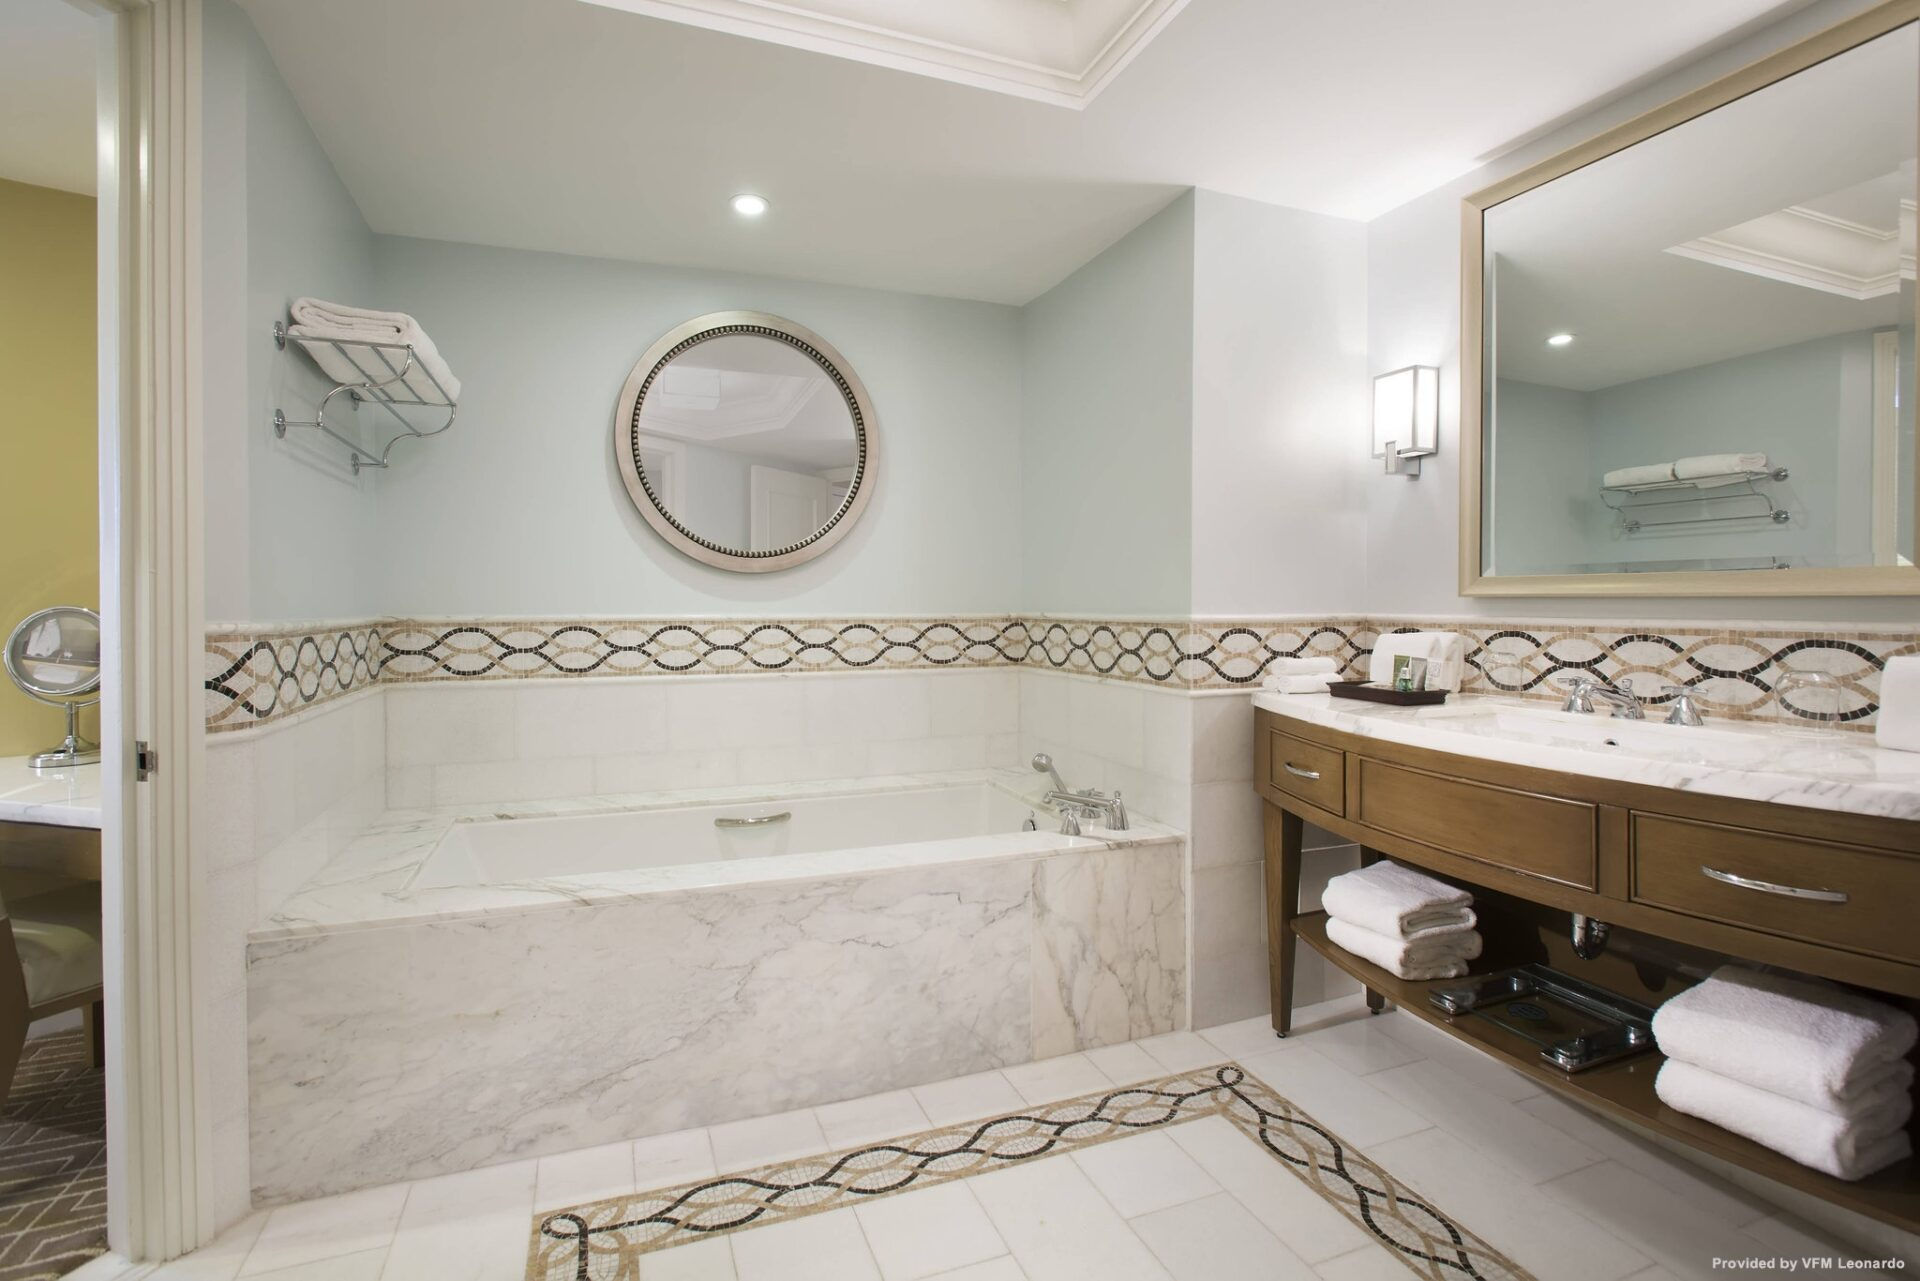 One BR Suite Bathroom